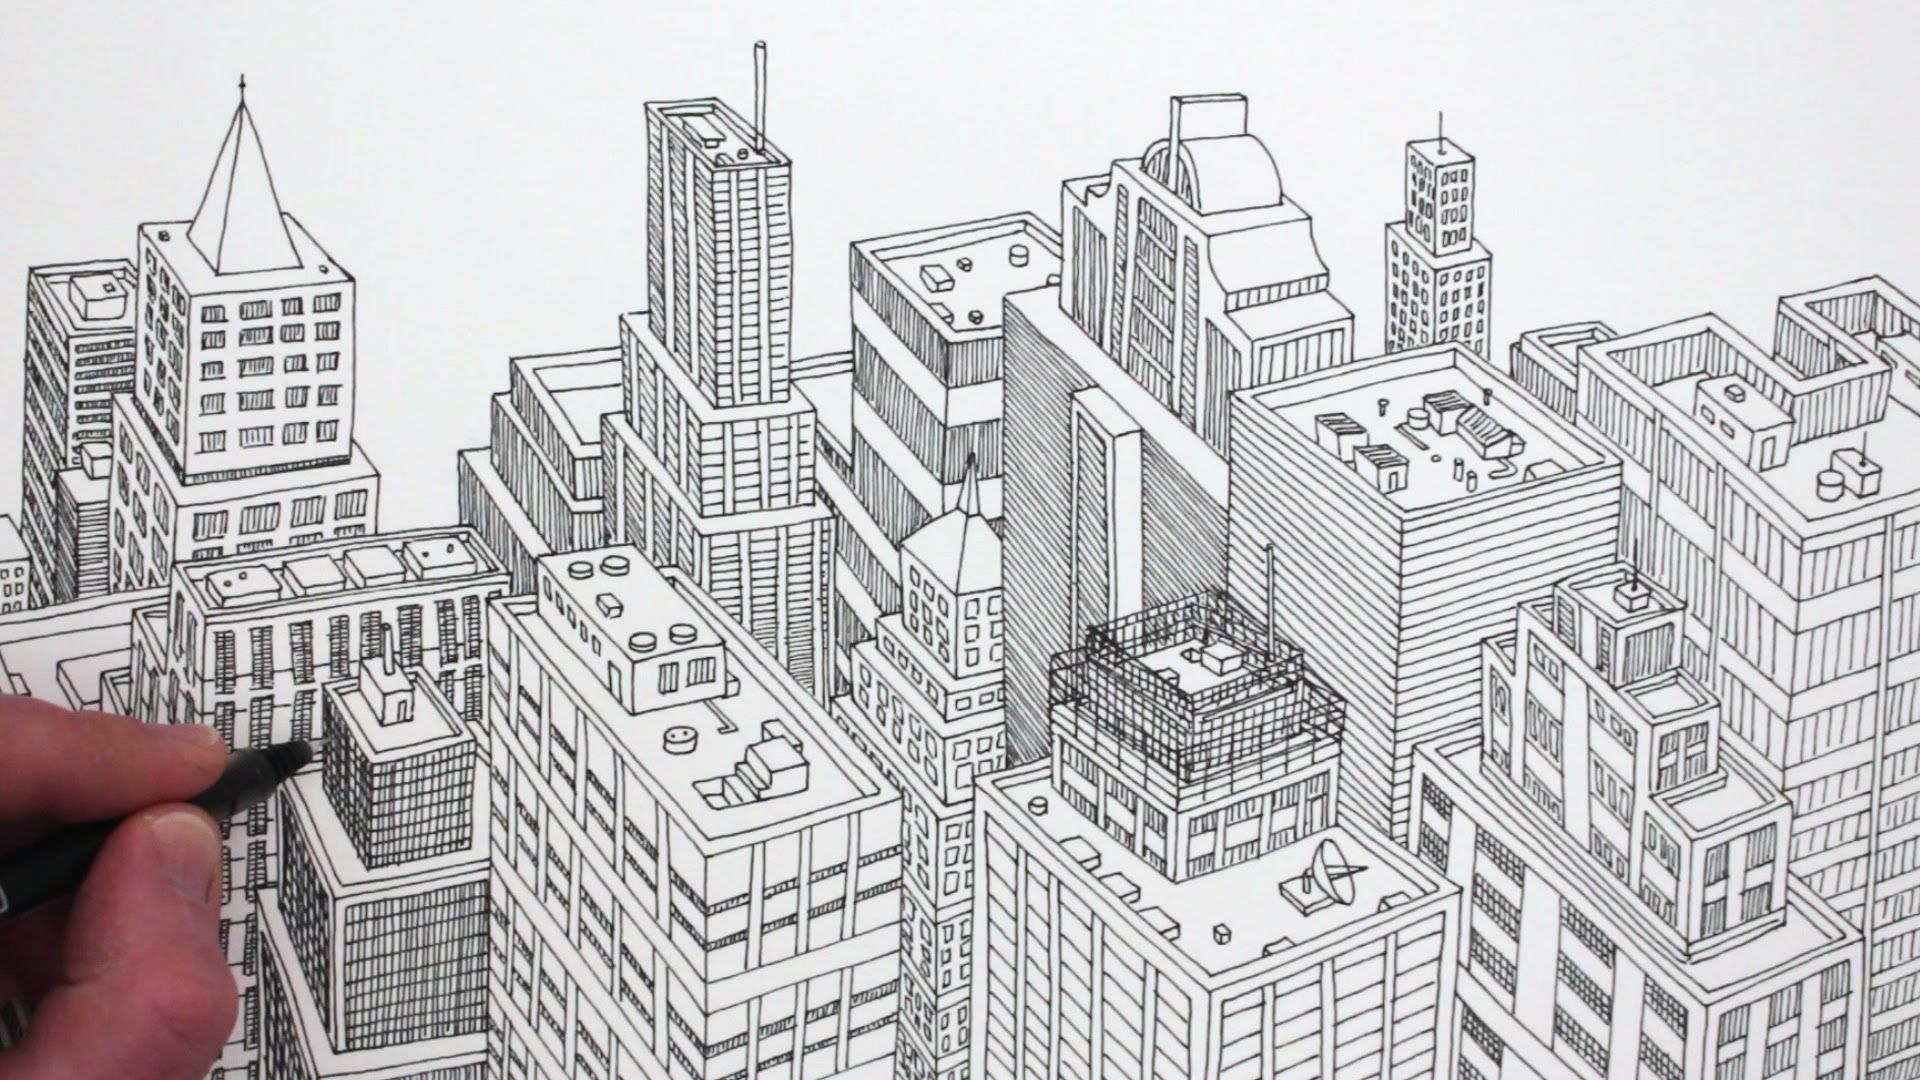 How To Draw A City In 3d Detail A Detailed Pen Drawing Of A City In Planometric That Becomes More Complex City Drawing Drawing Wallpaper Youtube Art Tutorials